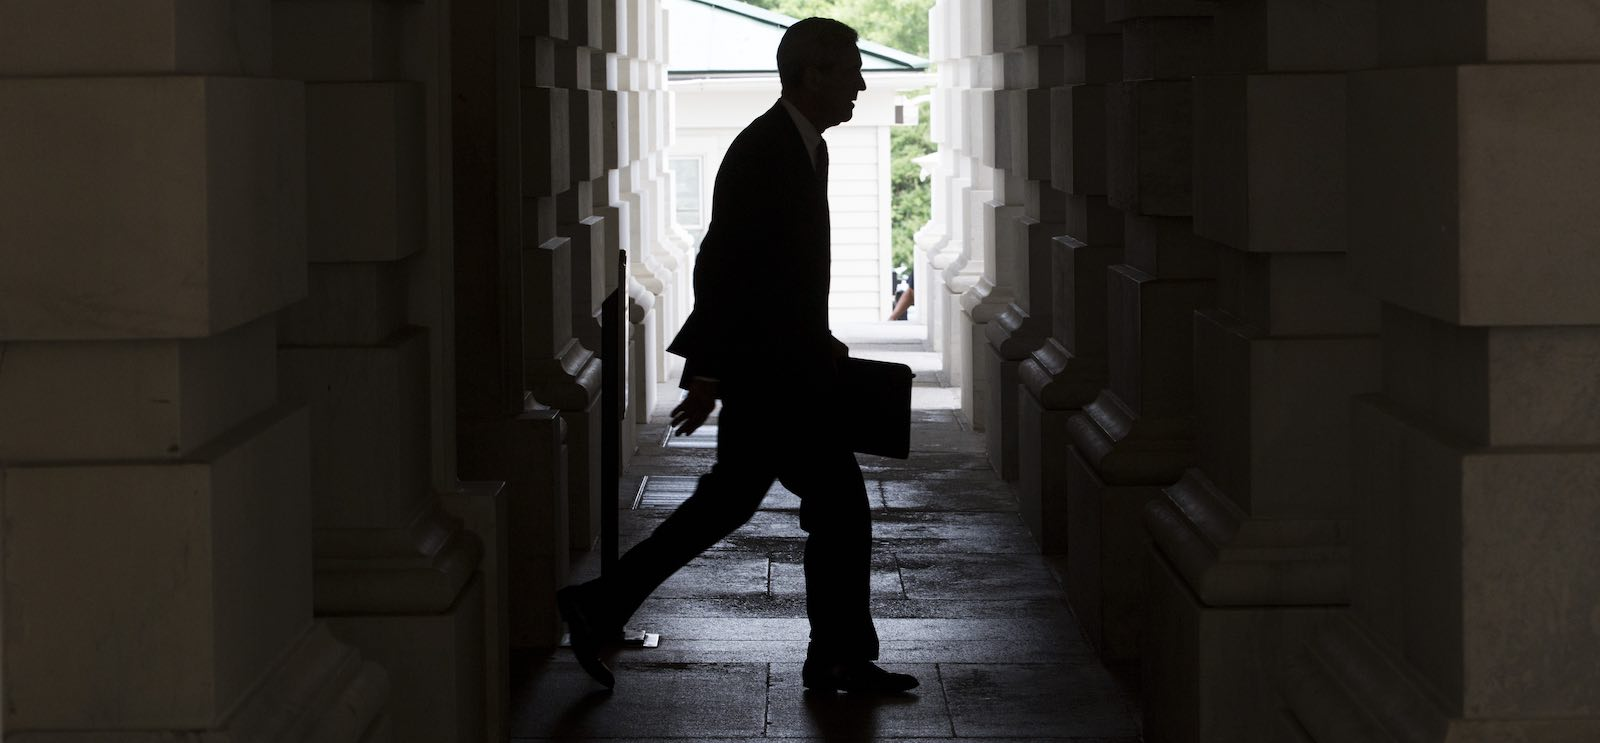 Special Counsel Robert Mueller leaves the US Capitol Building following a meeting with the Senate Judiciary Committee in June 2017 (Photo: Zach Gibson via Getty)